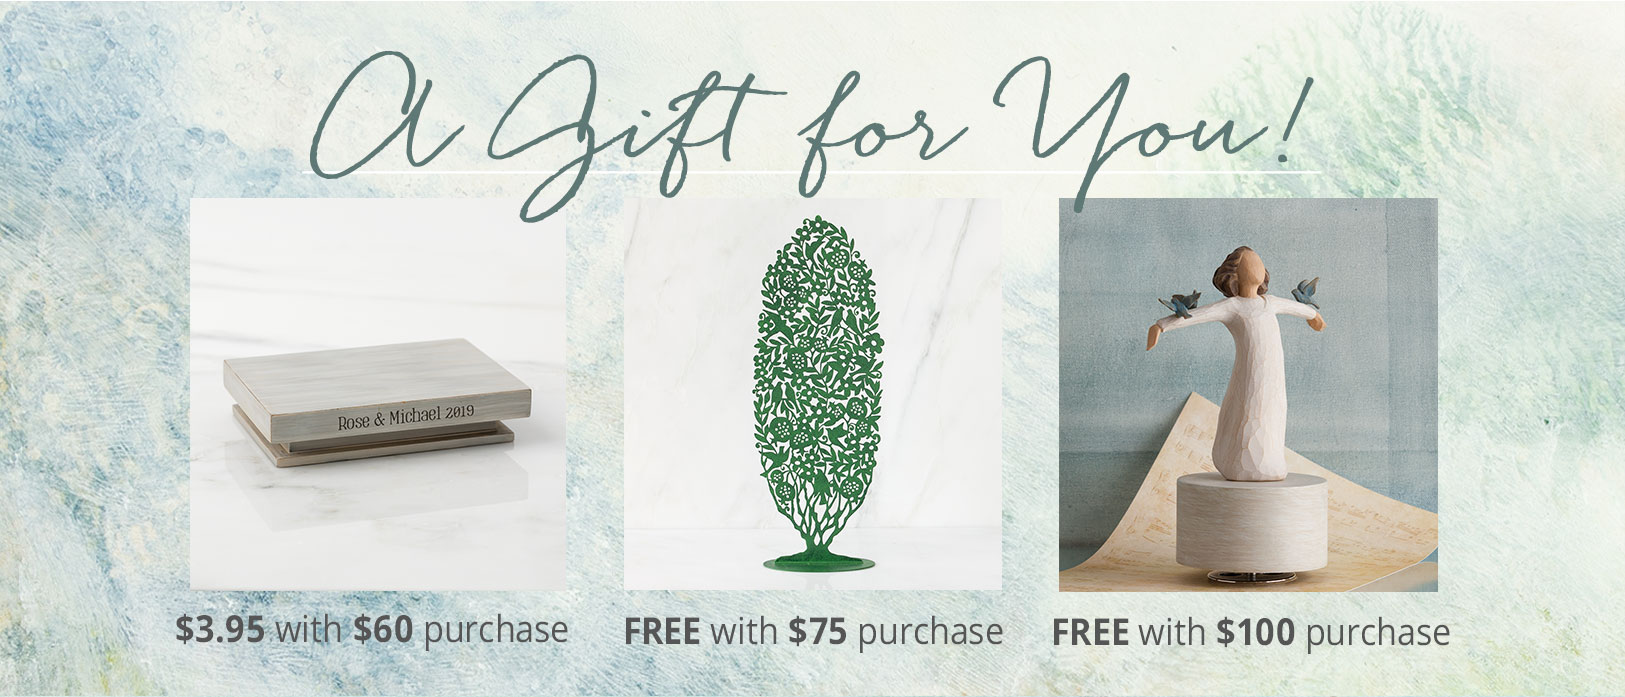 Personalized Hand-painted Shelf $3.95 with $60 purchase. Green metal tree free with $75 purchase. Happiness Musical free with $100 purchase.